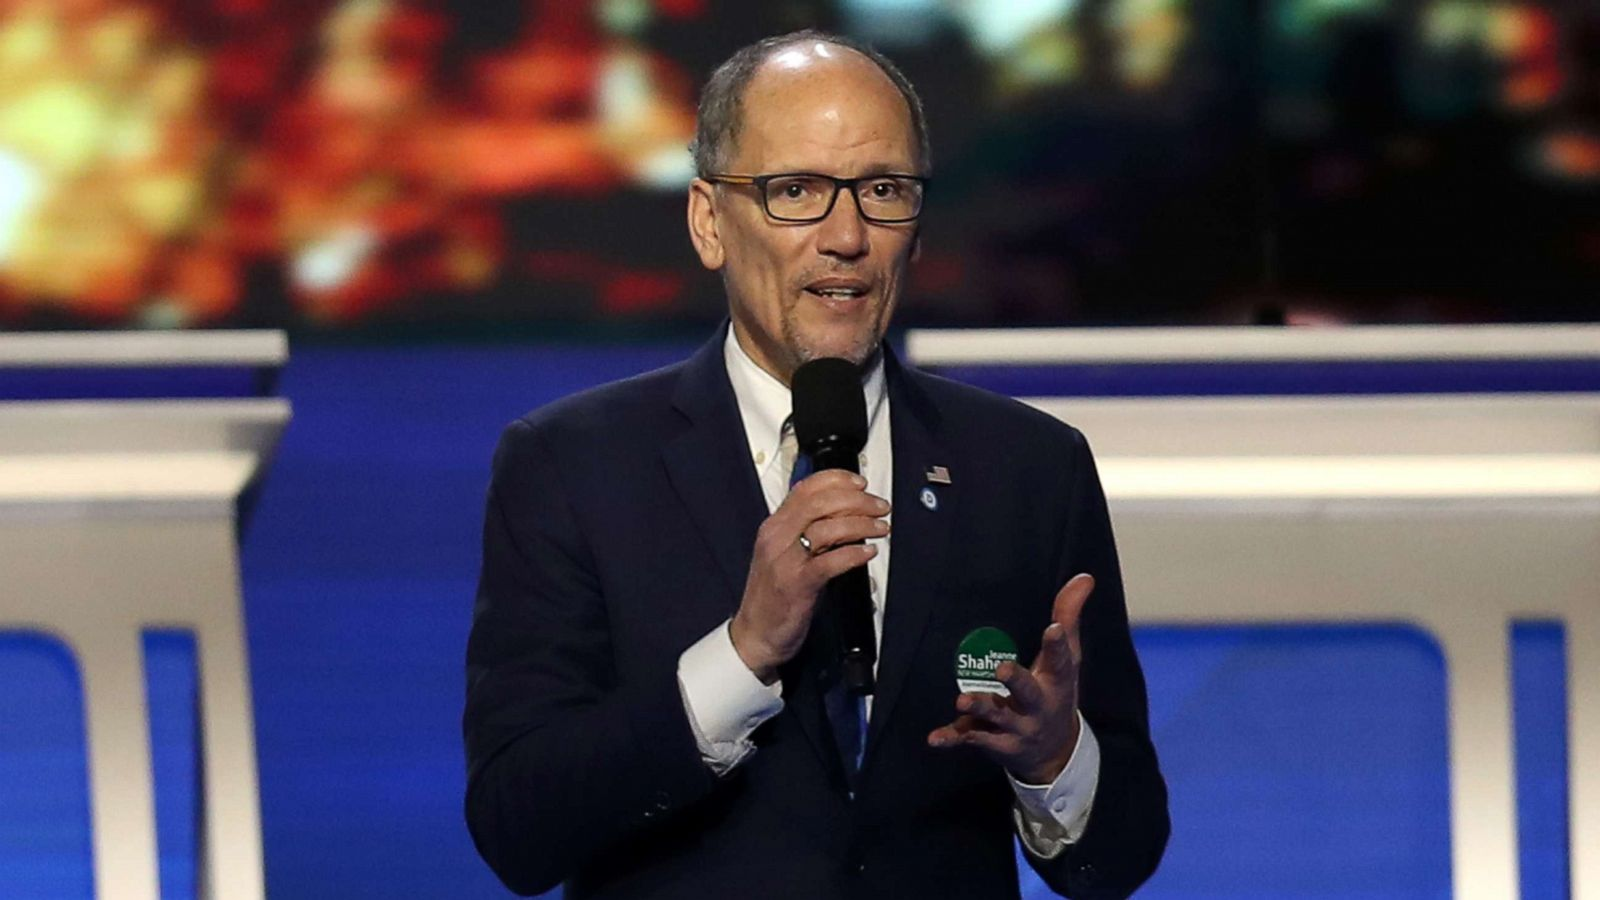 Dnc Chair Tom Perez Compares Biden Sexual Assault Allegation To Hillary Emails Abc News